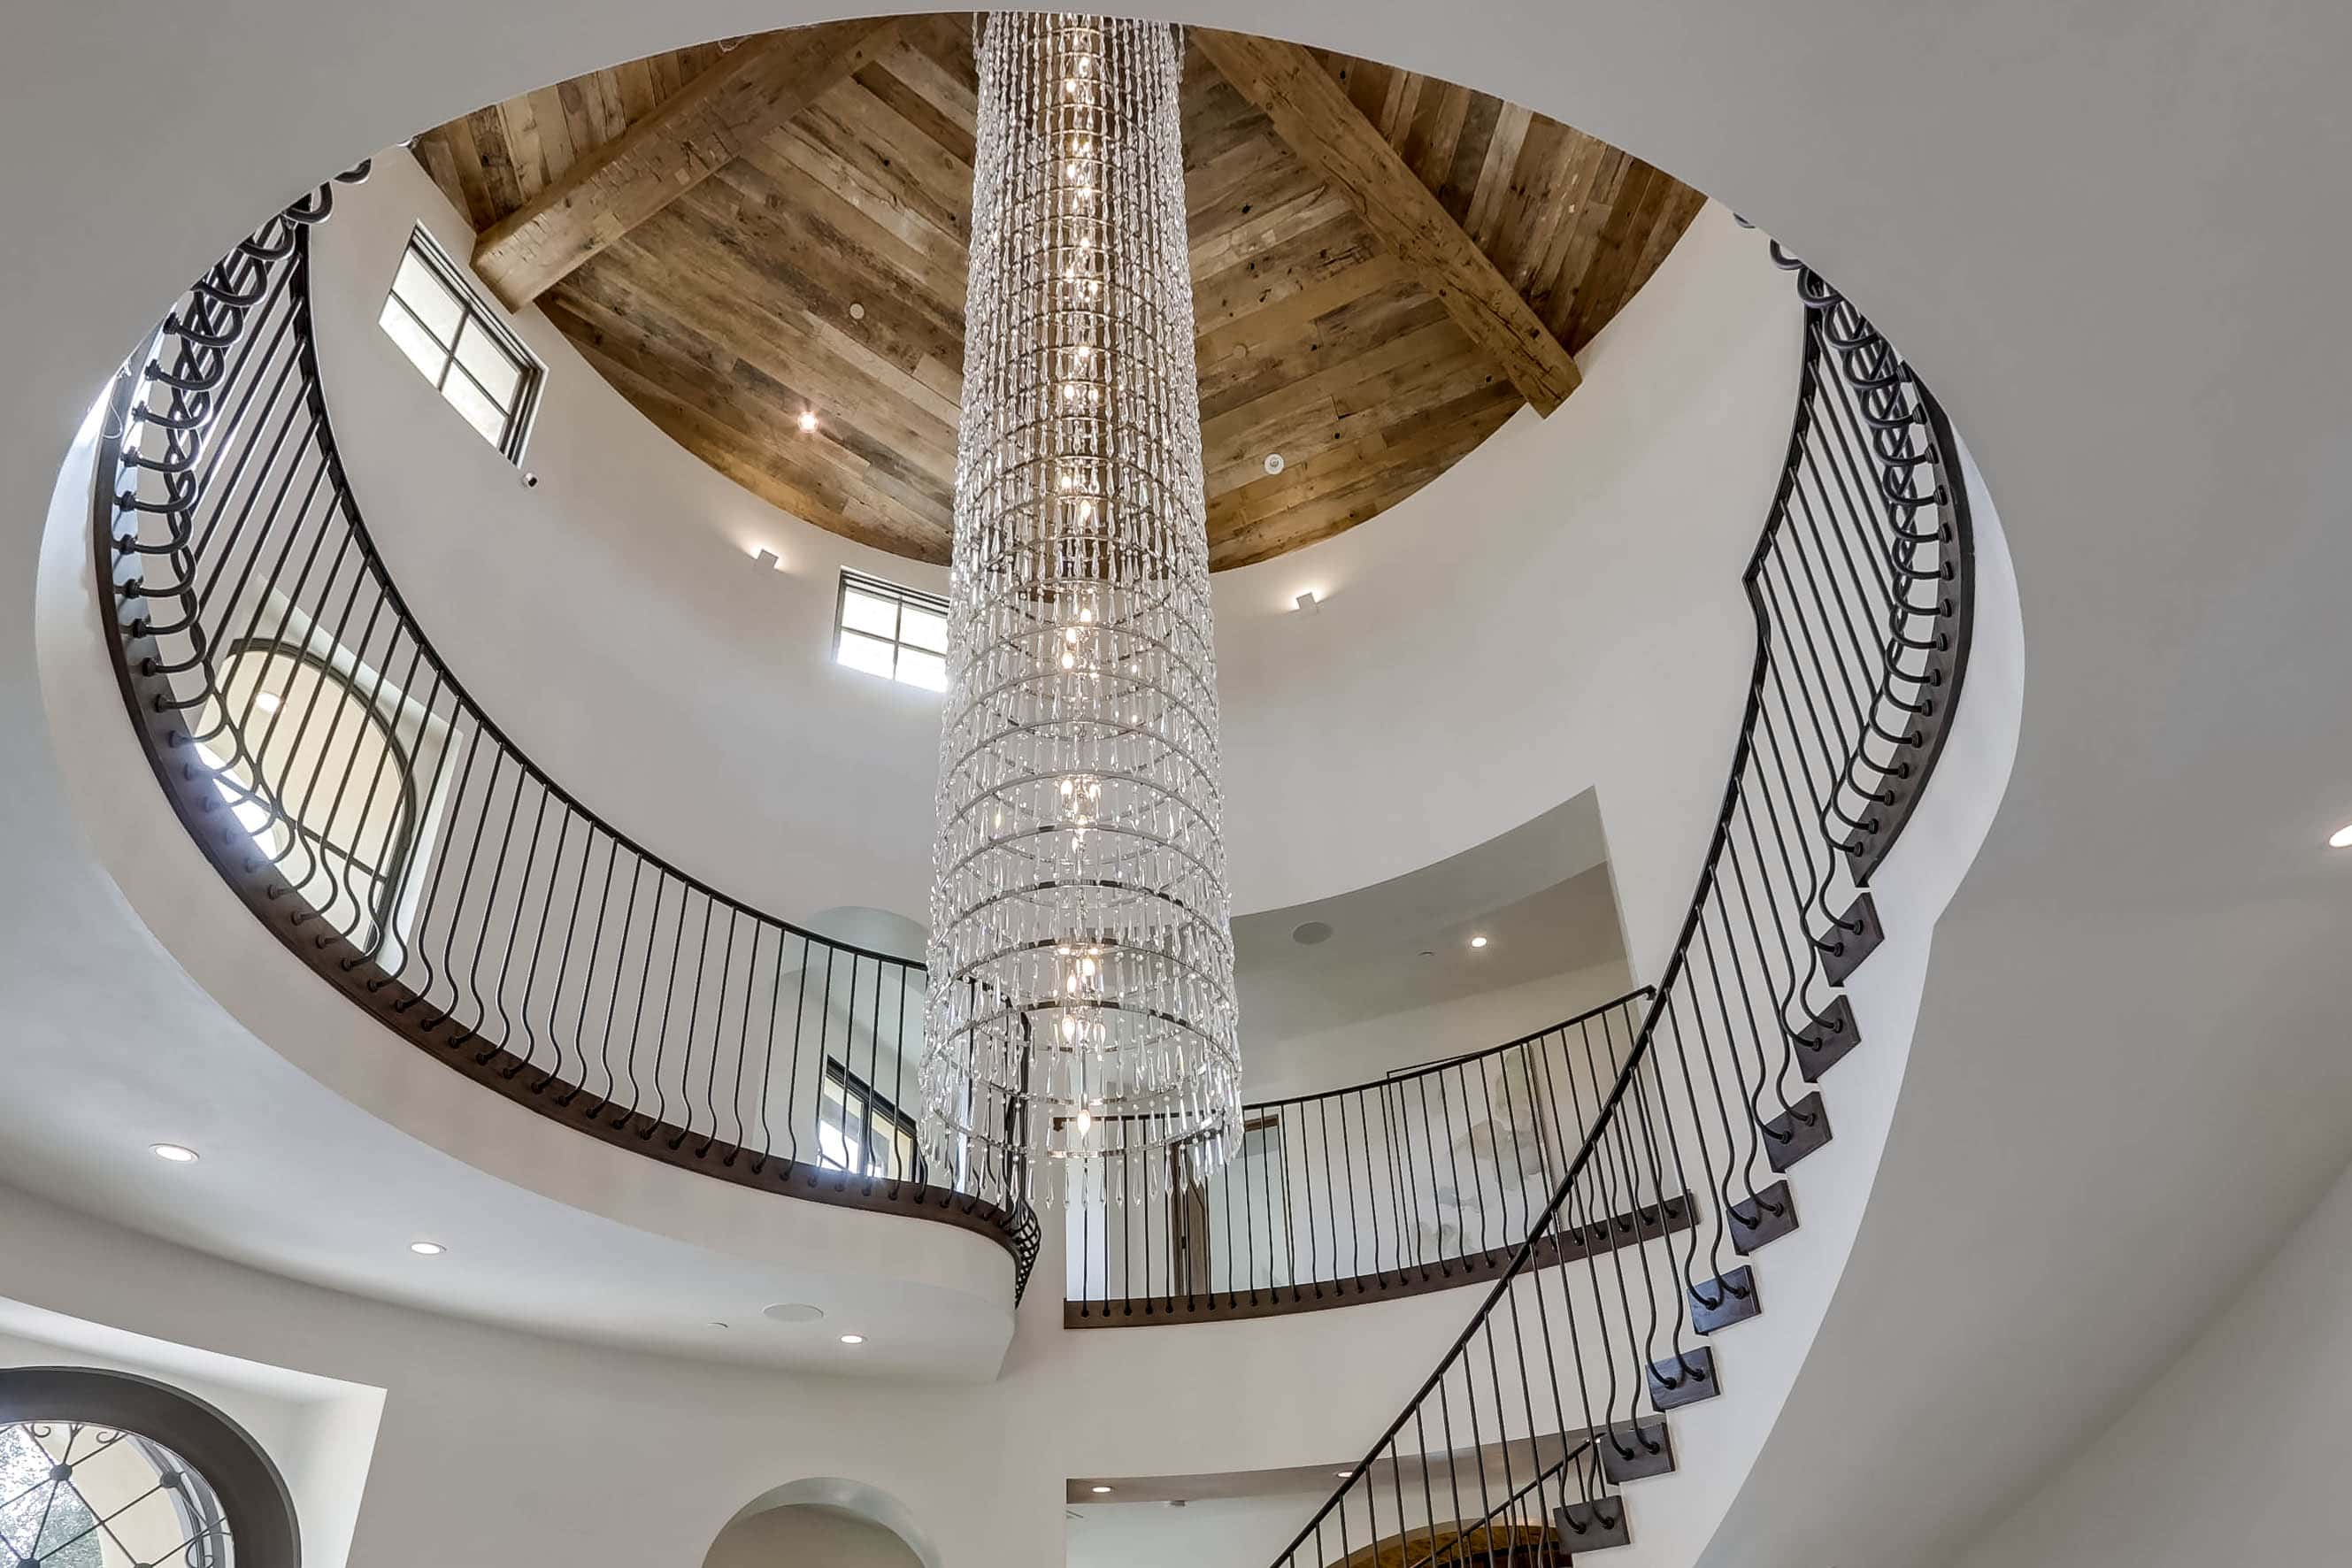 15-ft chandelier in entryway of 22355 Starwood Dr. Yorba Linda, CA